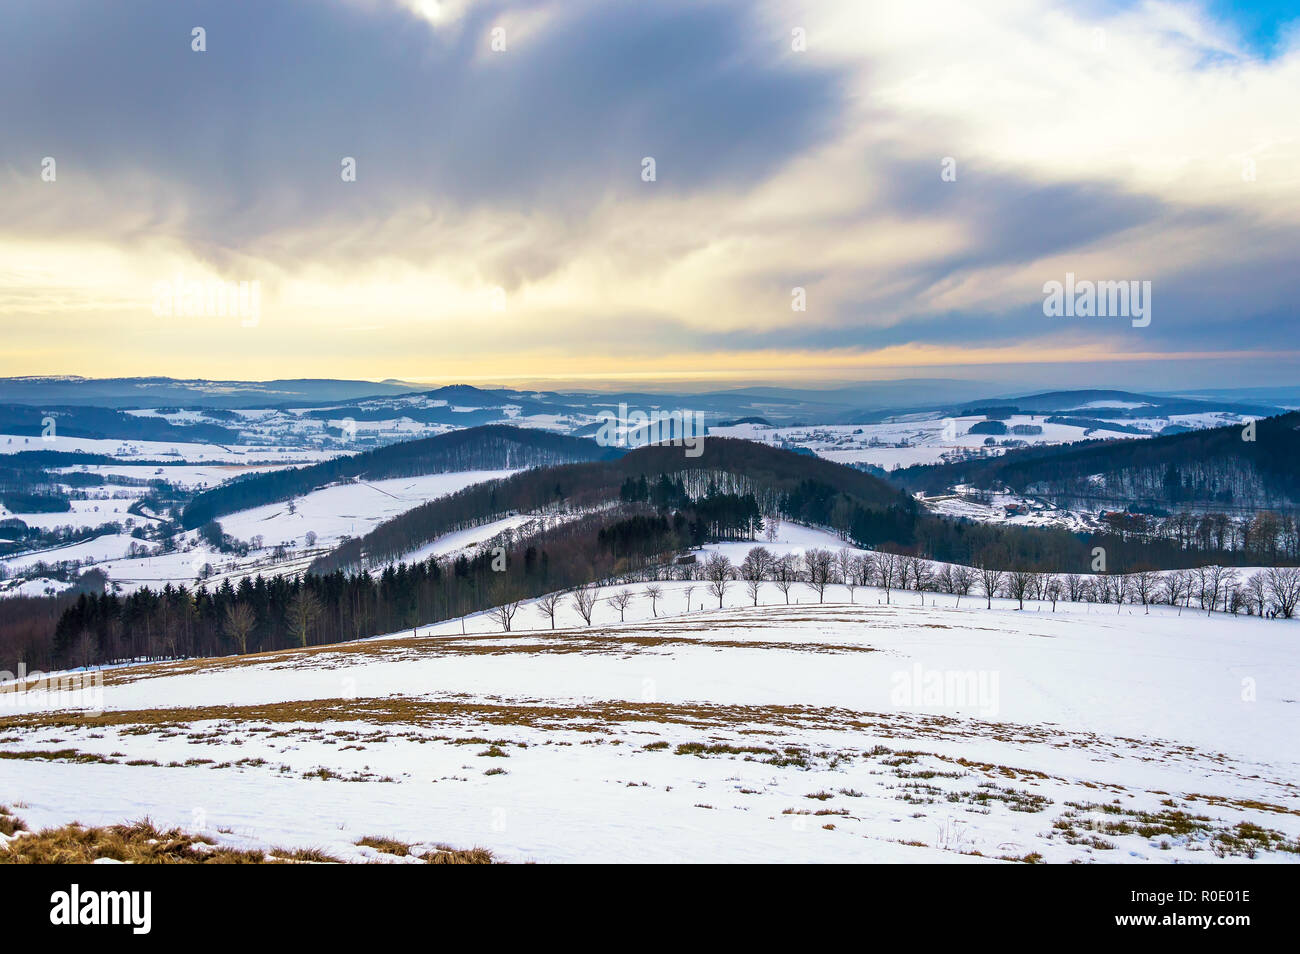 Majestic winter snowy landscape with dramatic sky in Rhön Mountains, Hesse, Germany - Stock Image